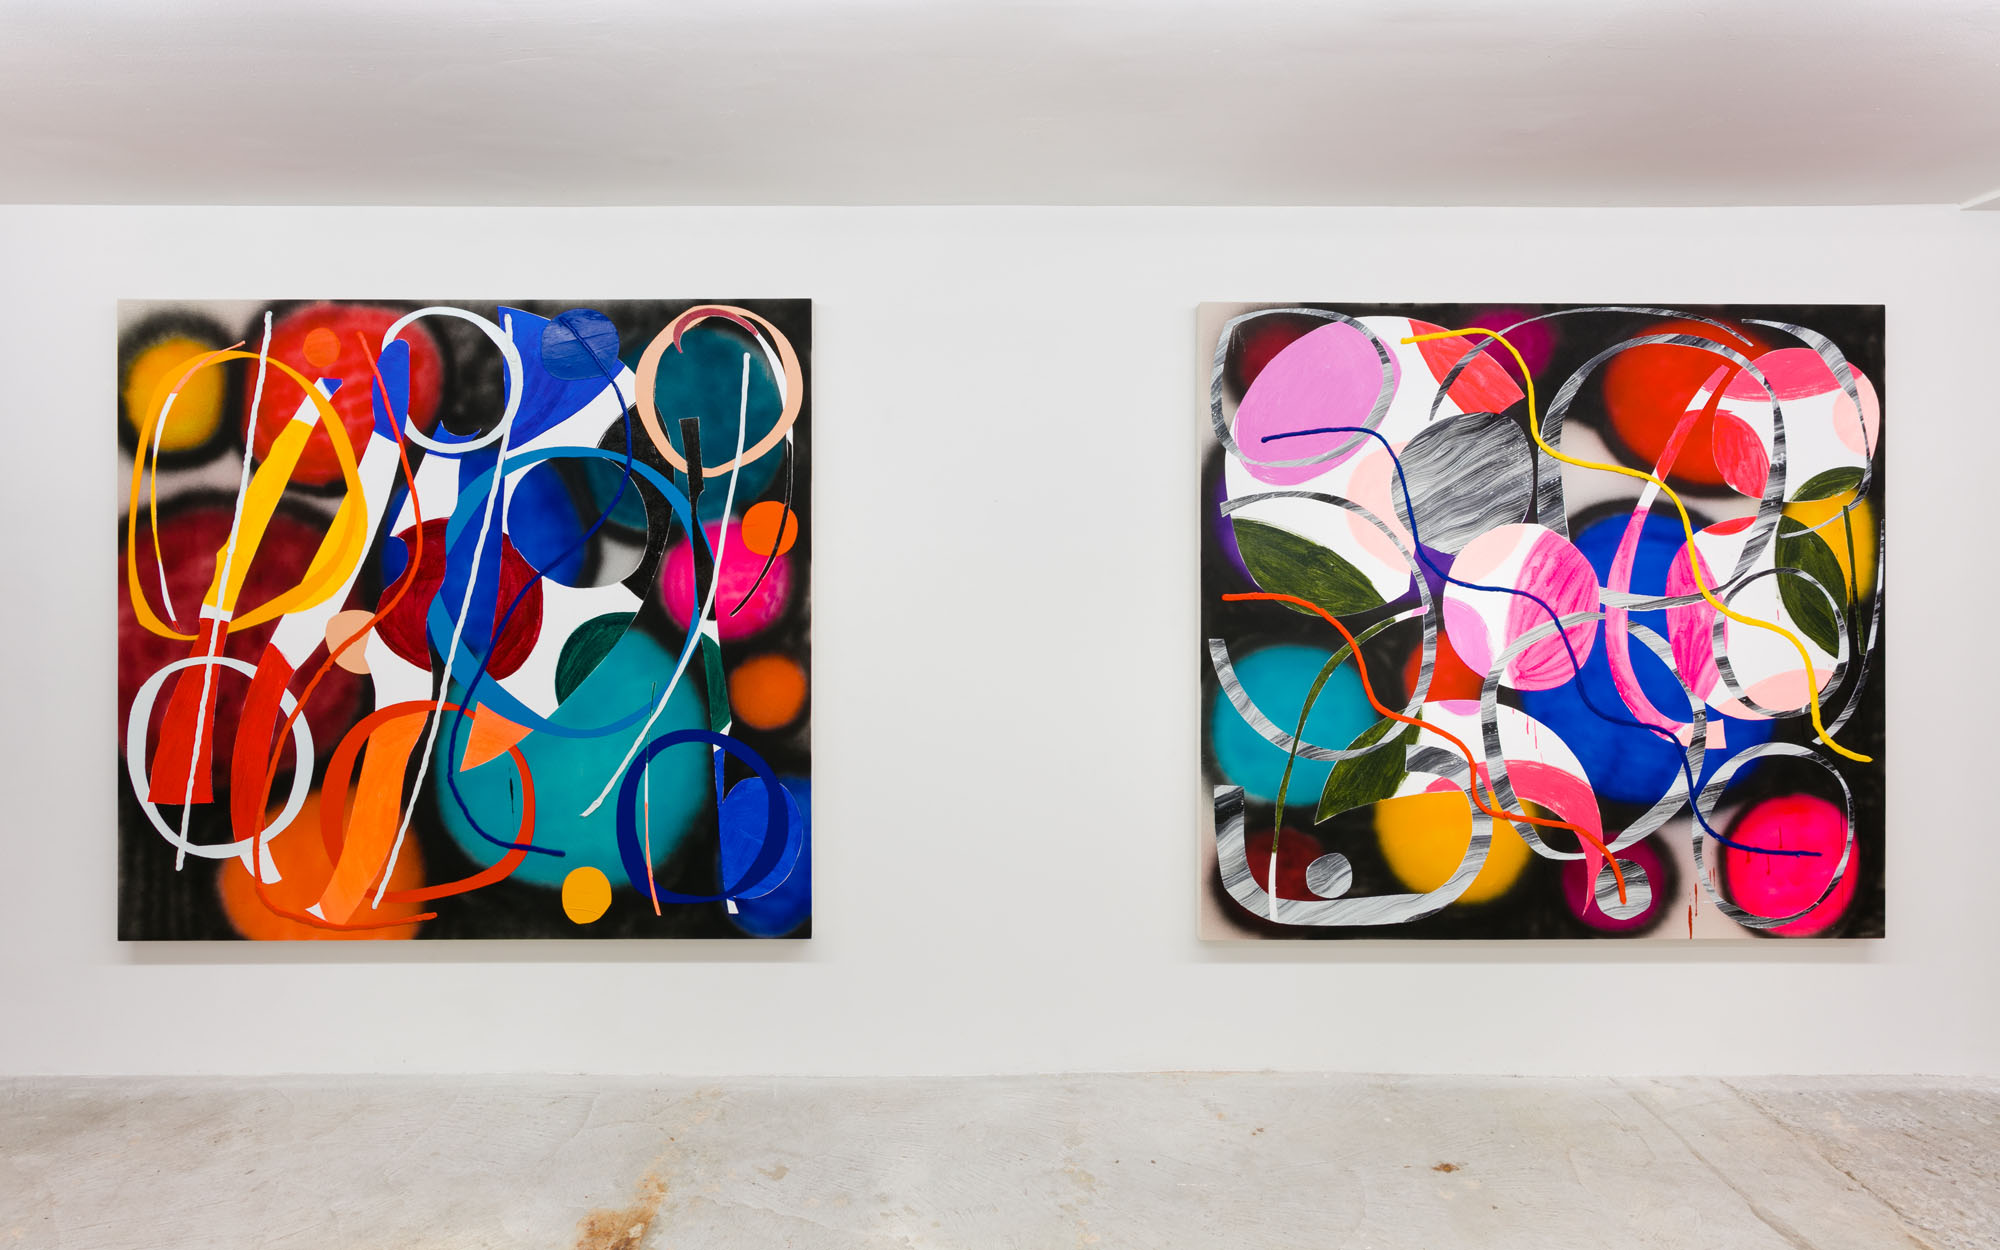 Trudy Benson,  Closer Than They Appear,  Installation view at Lyles & King, August 30 - October 7, 2018